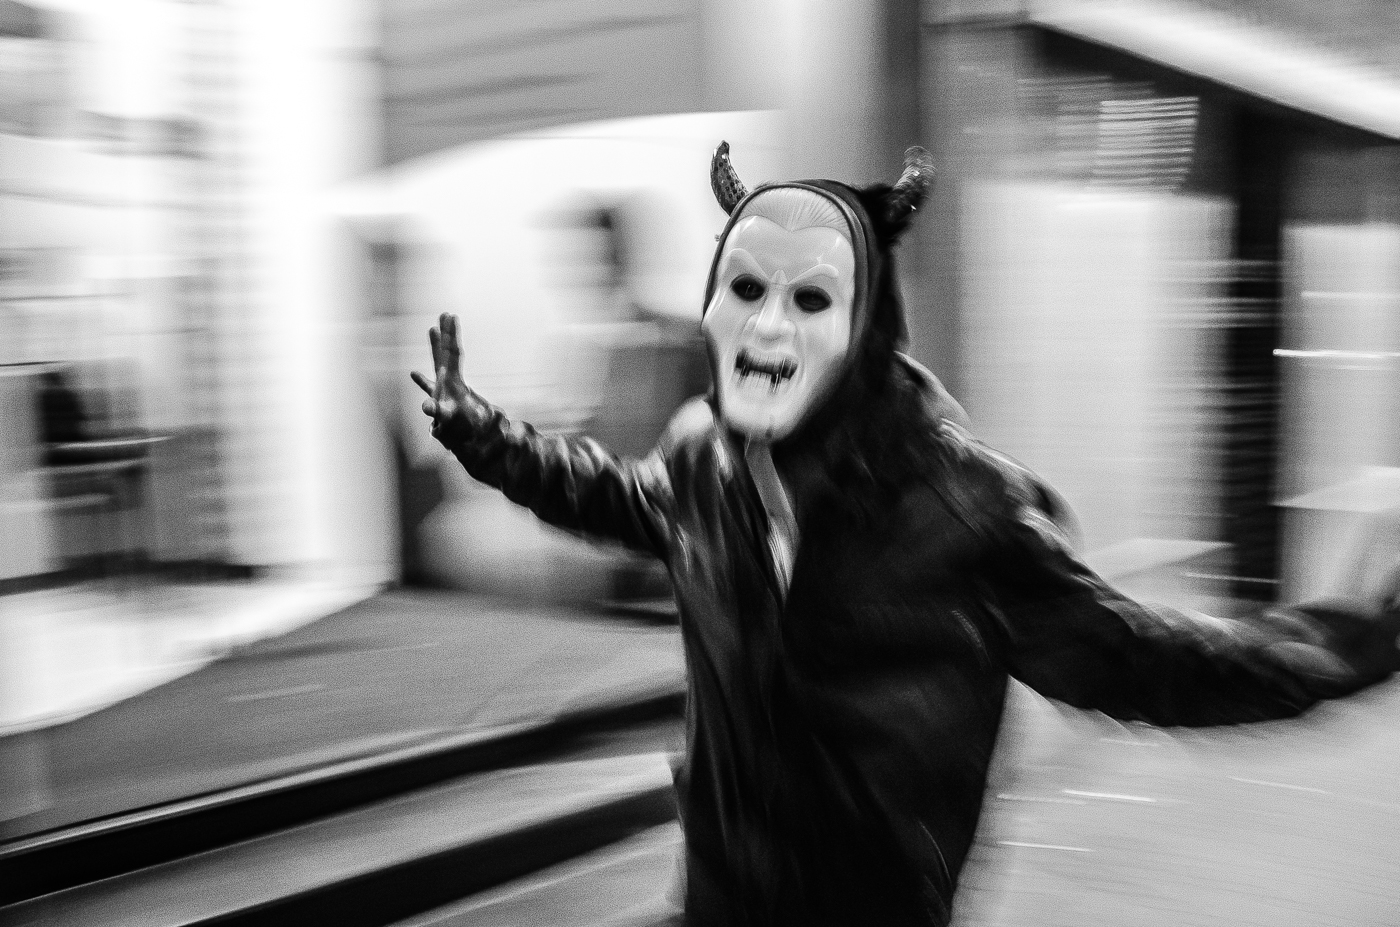 A Spooky Man With Mask on the Street